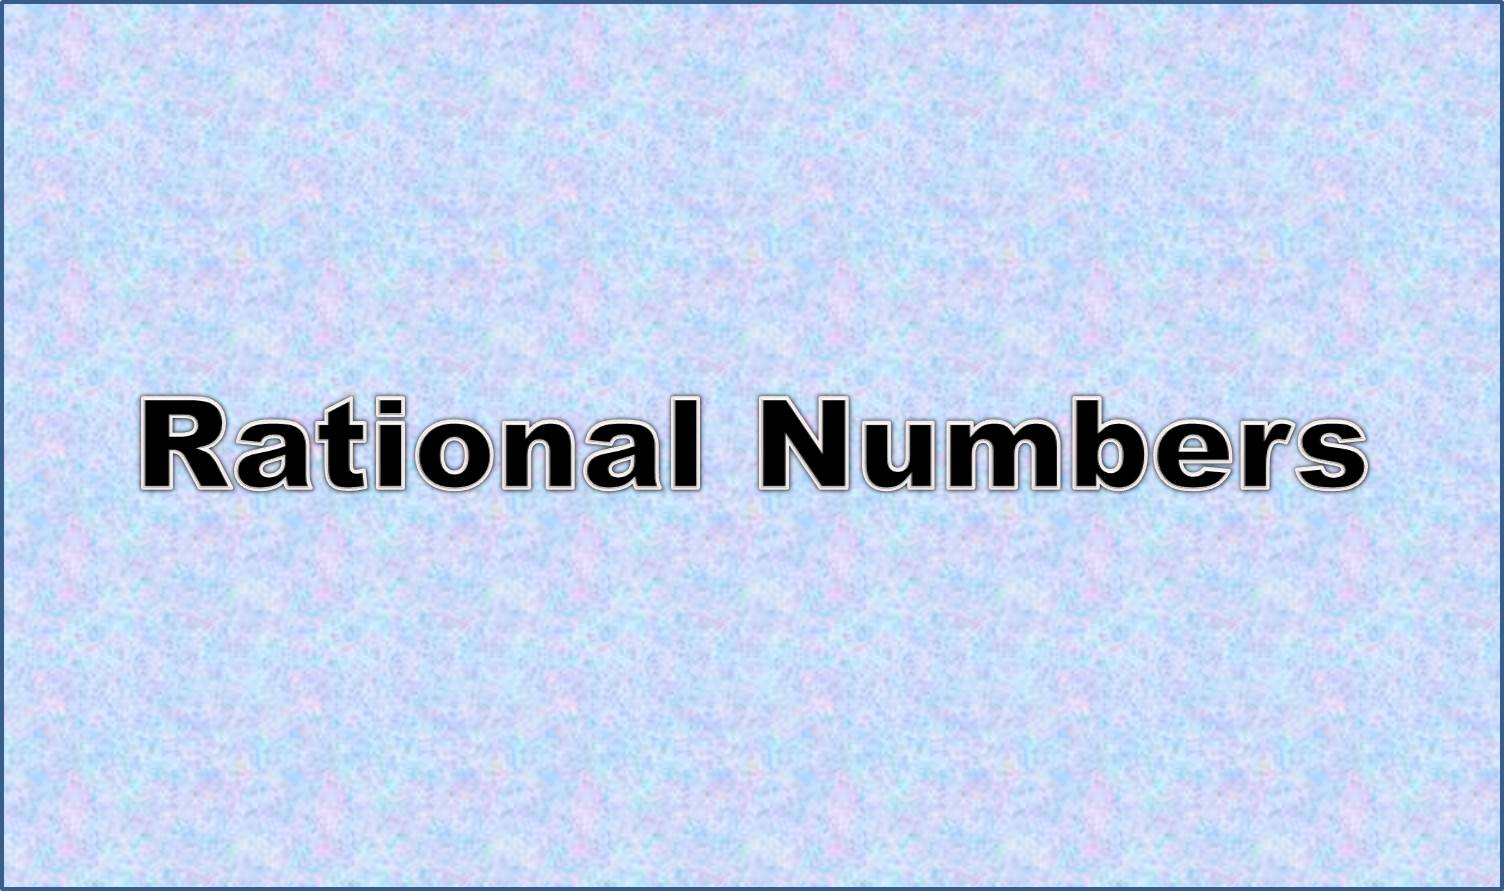 http://study.aisectonline.com/images/Introduction to Rational Numbers.jpg